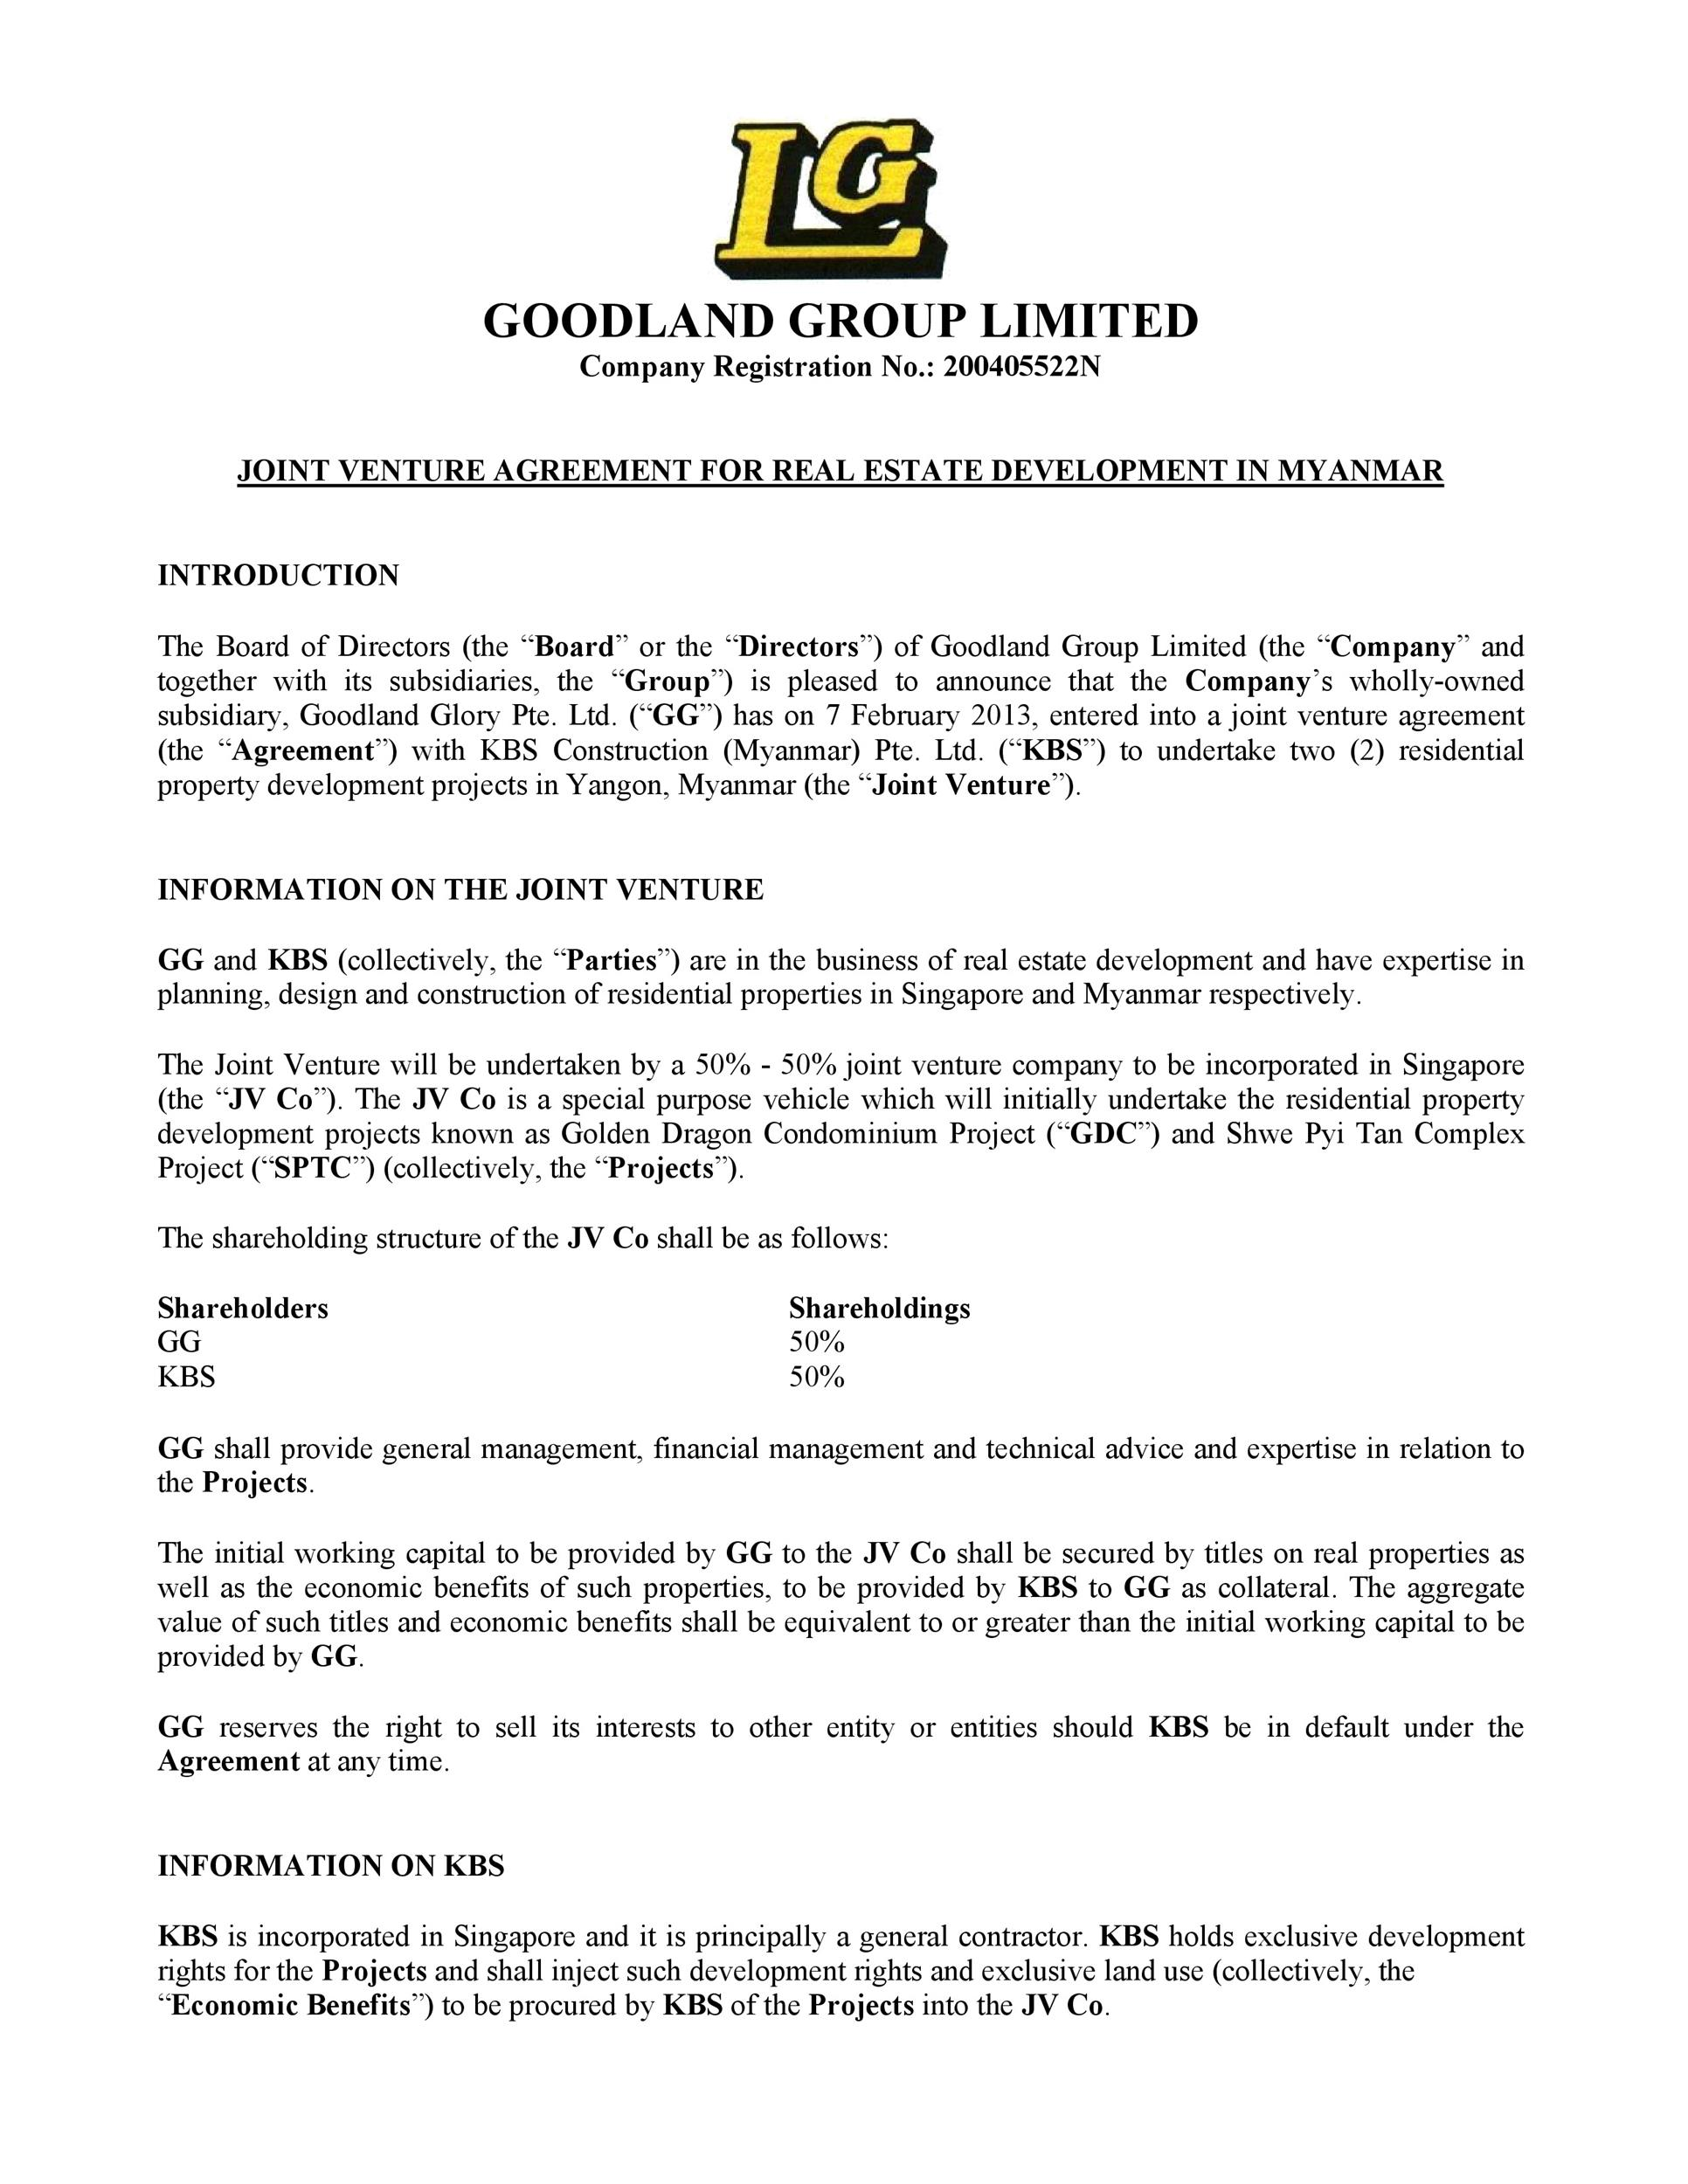 Free Joint Venture Agreement Template 46  Free Joint Venture Agreement Template